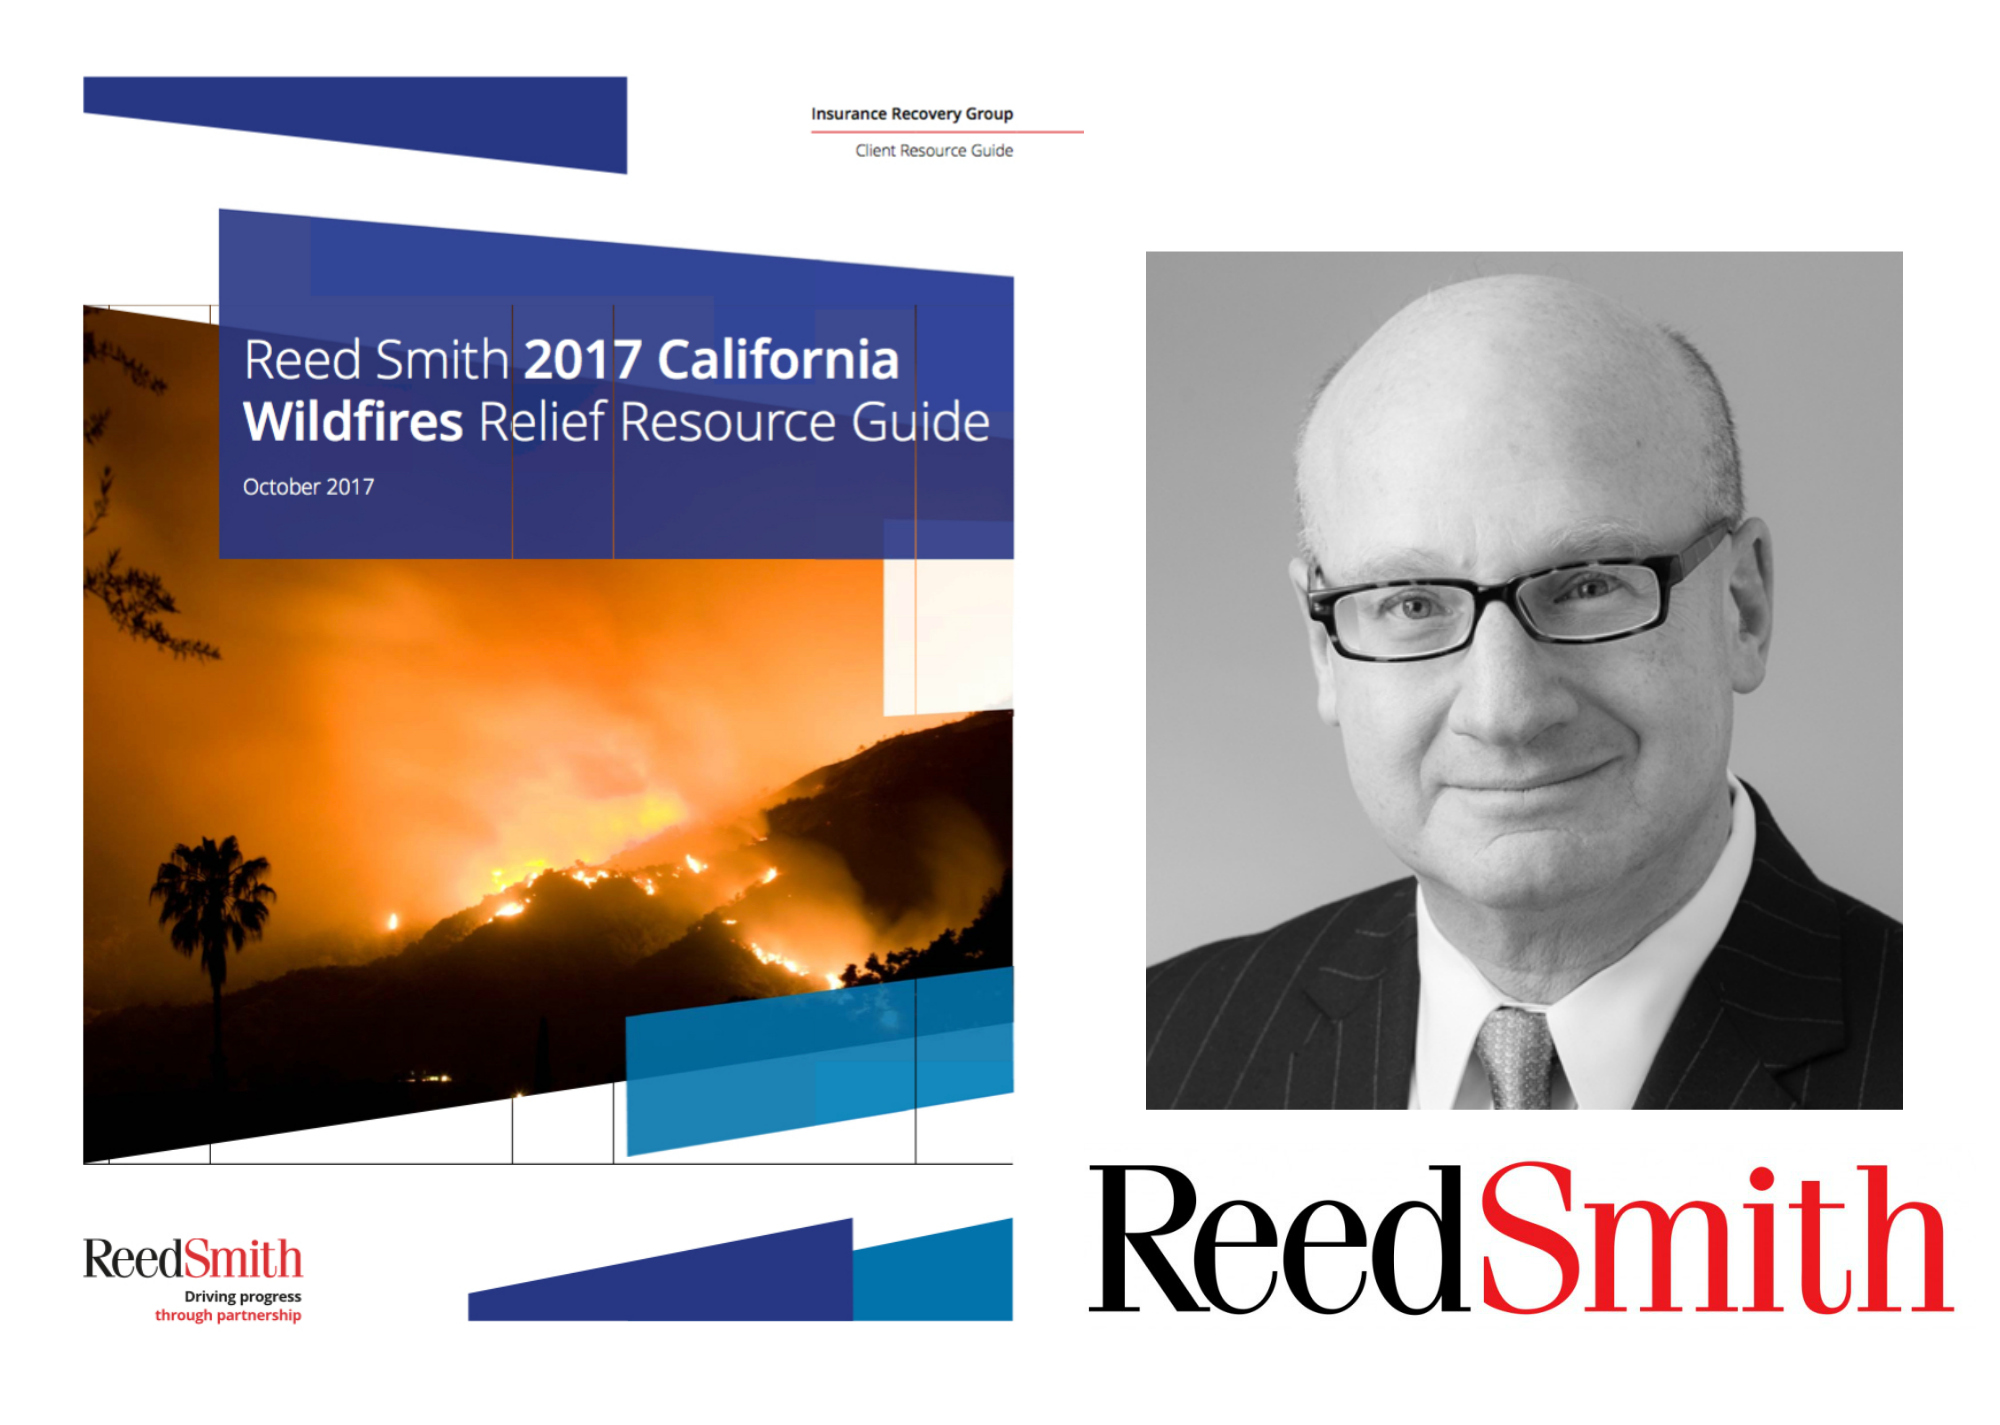 Reed Smith 2017 California Wildfires Relief Resources Guide